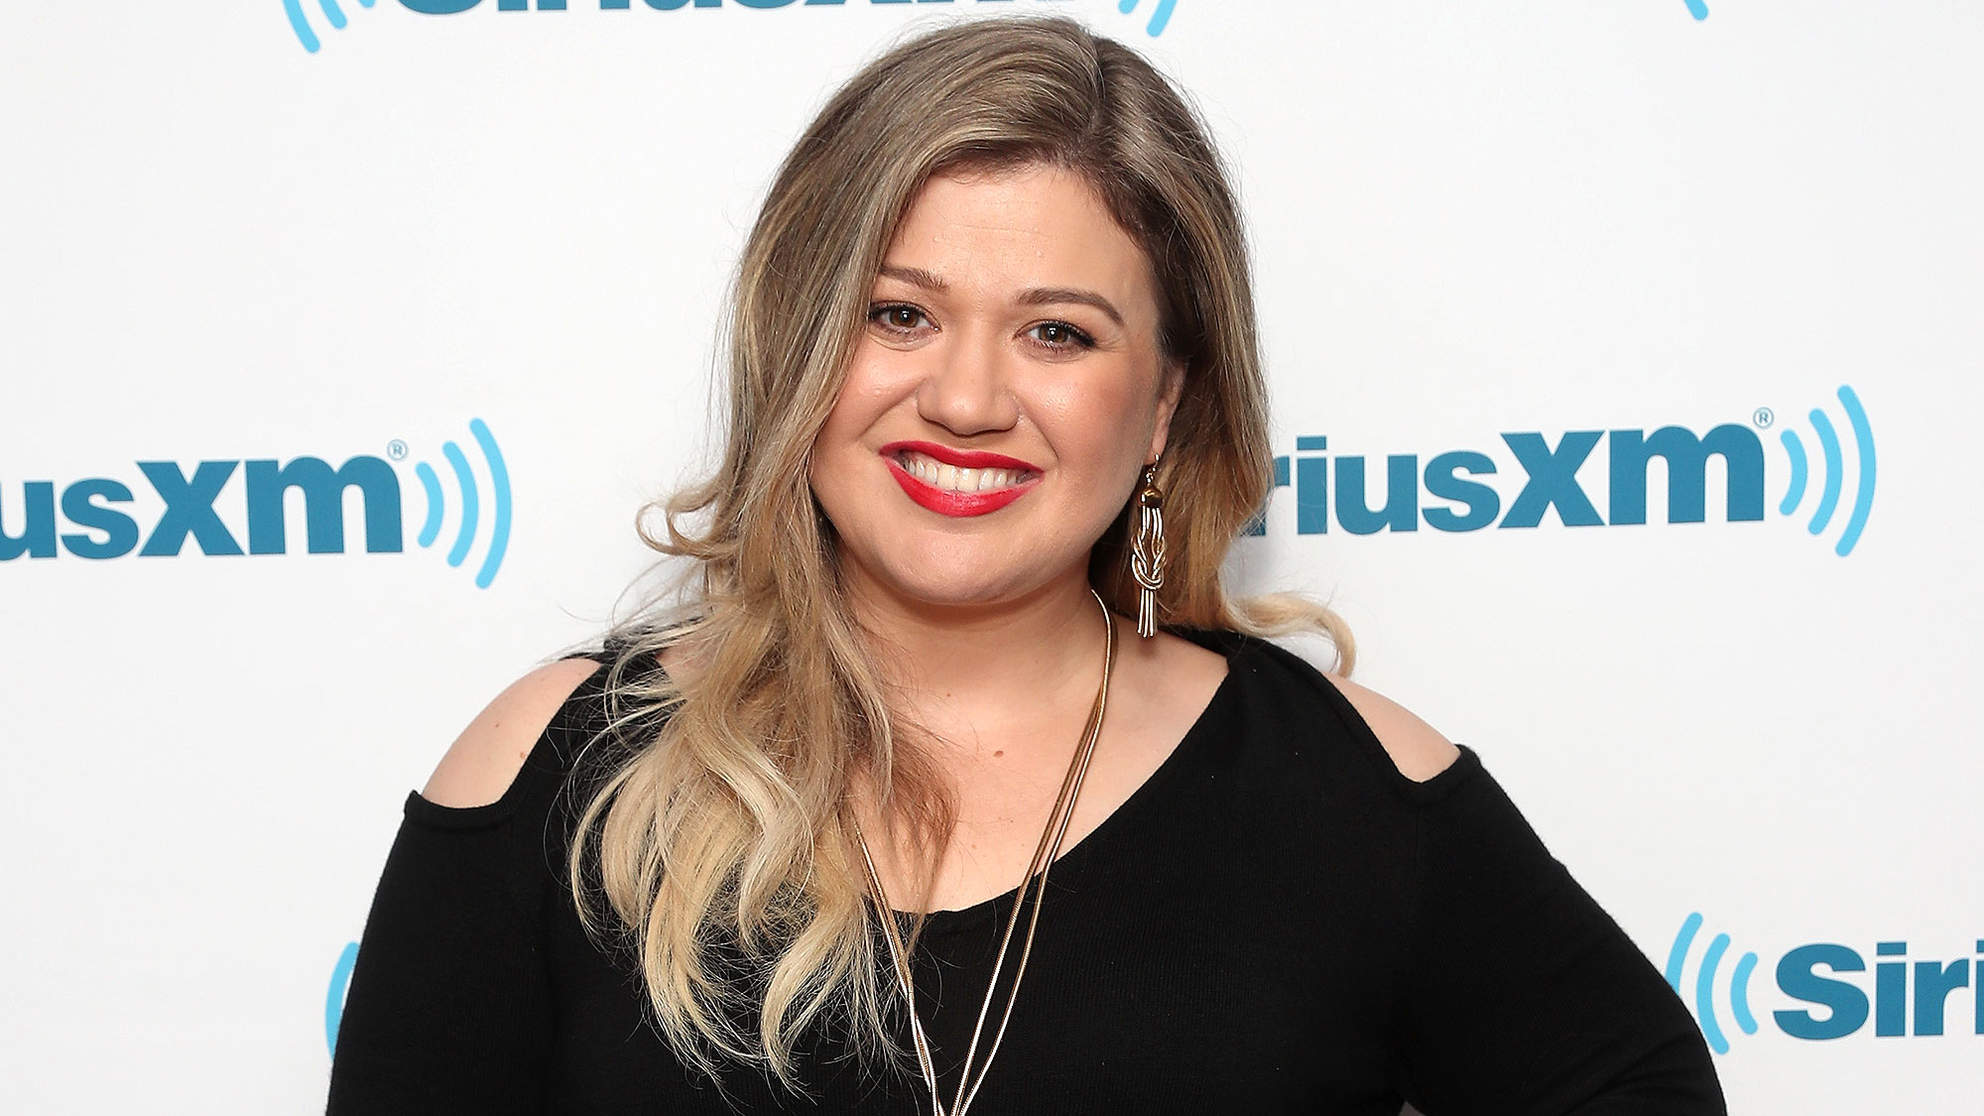 Kelly Clarkson Has Lost 37 Lbs. on New Regimen But Will 'Love Her Body No Matter What Size She Is'